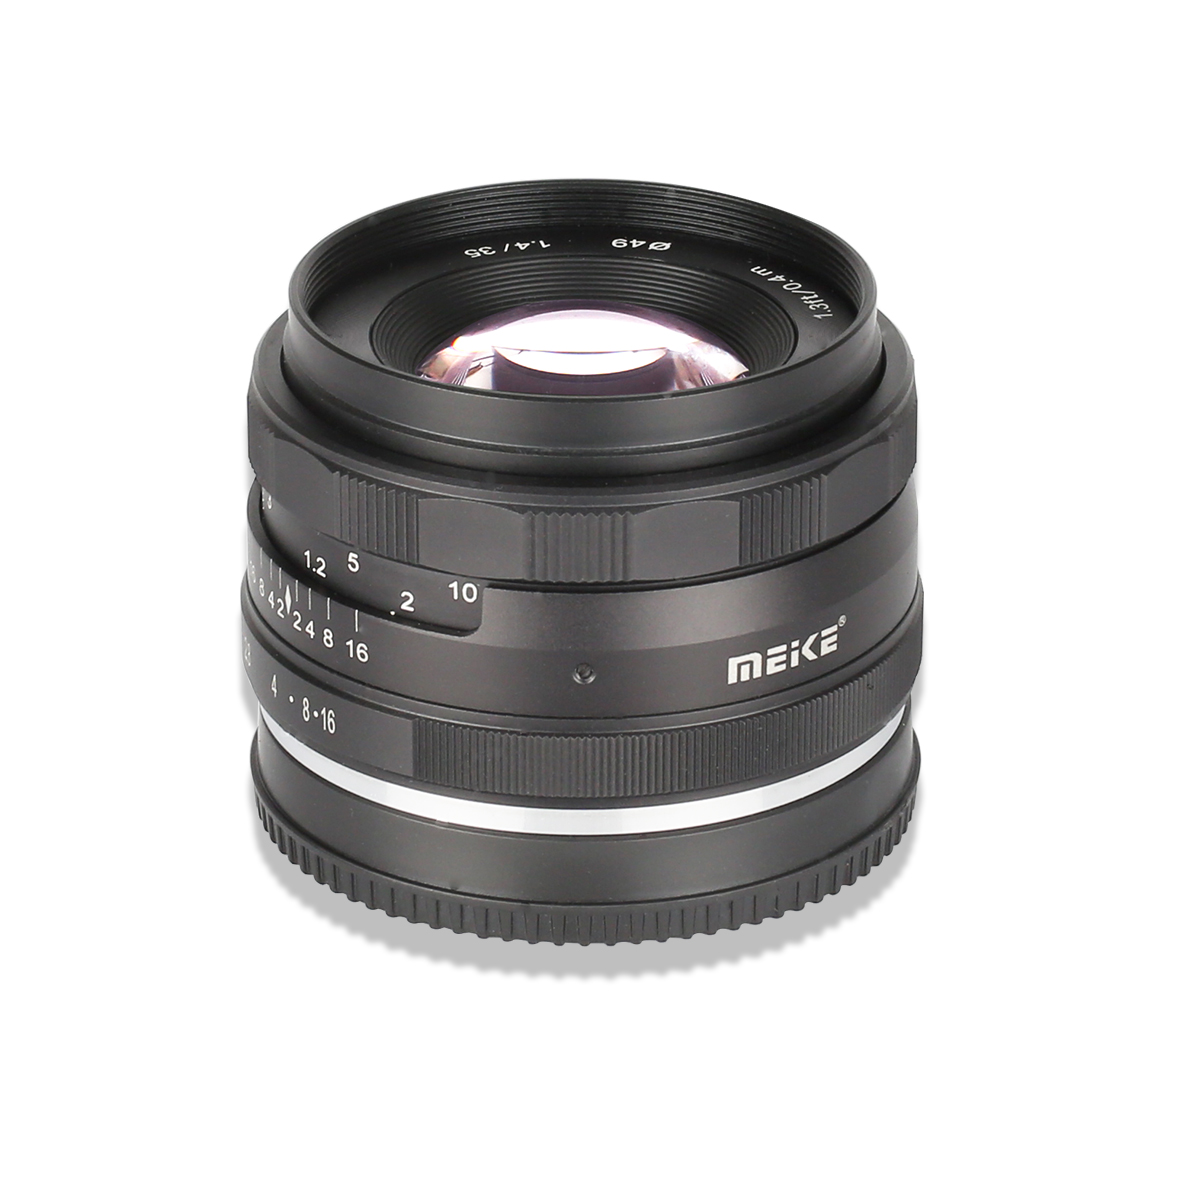 Lens MEIKE 35mm F1.4 fixed focus lens for Fuji X-Mount